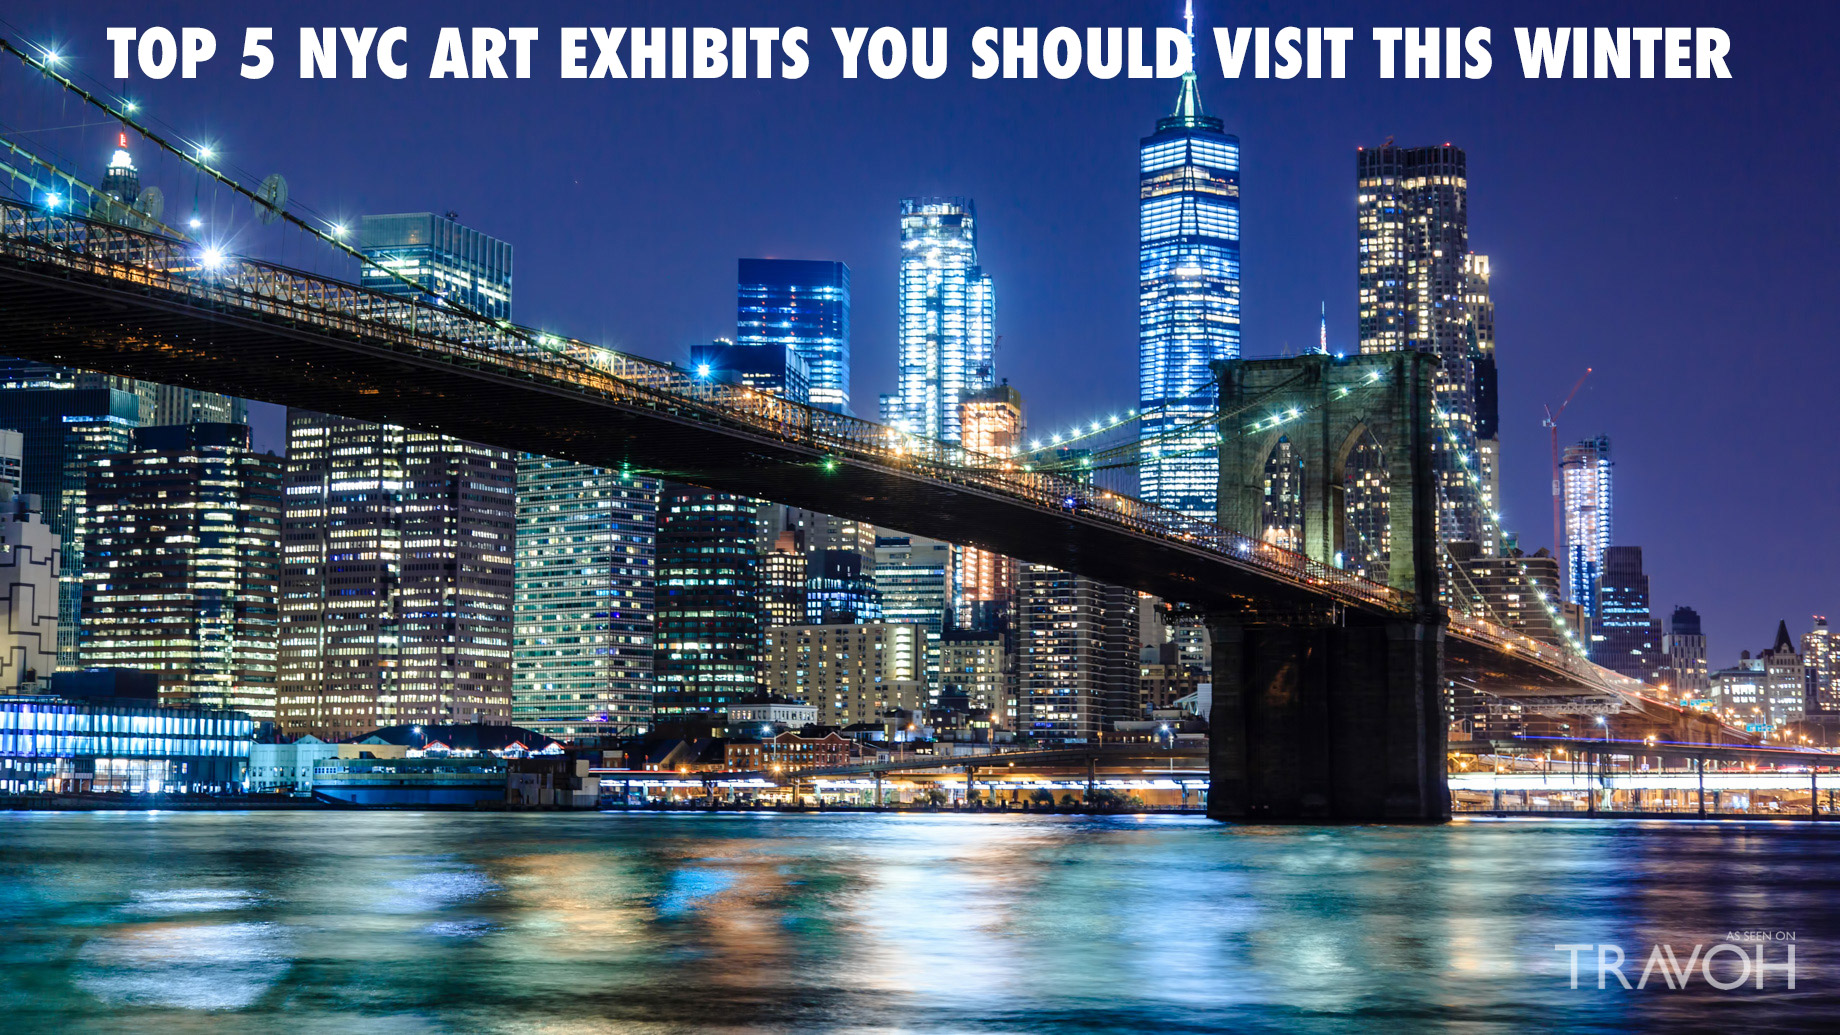 Top 5 New York City Art Exhibits You Should Visit This Winter